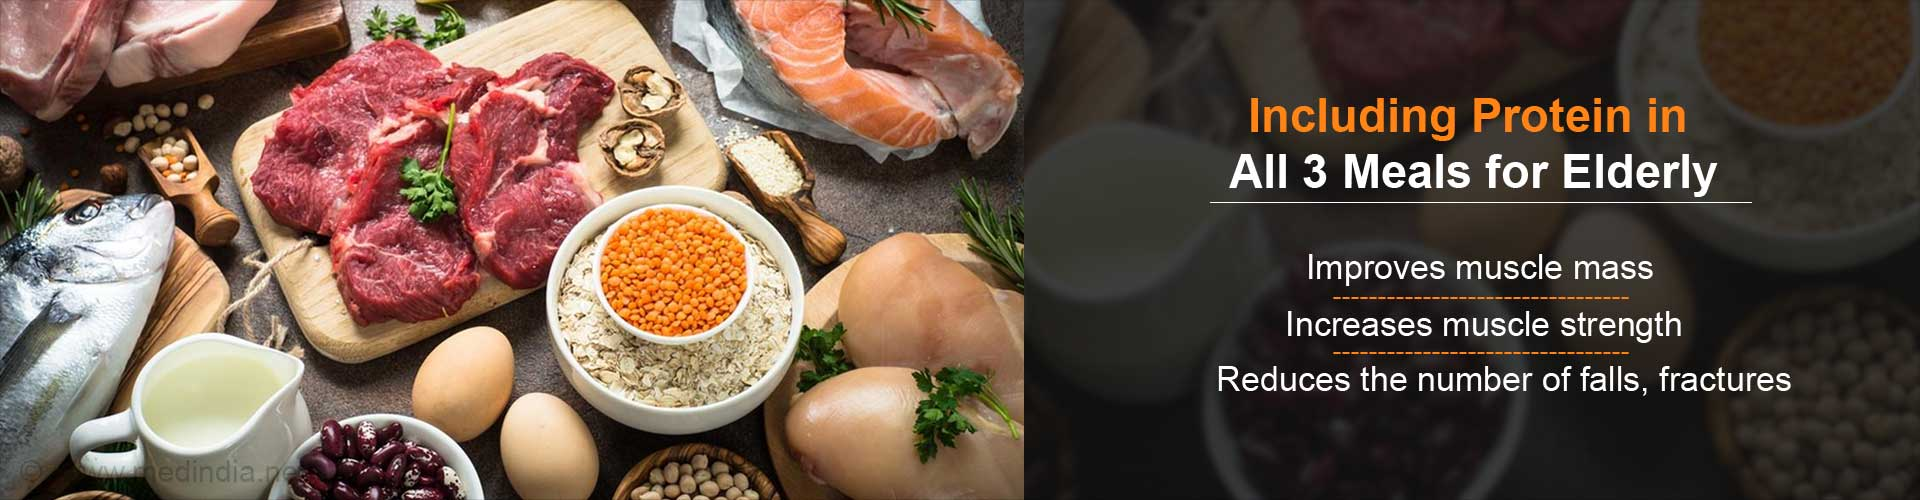 Power Up All Three Meals With Protein To Improve Muscle Mass in Seniors